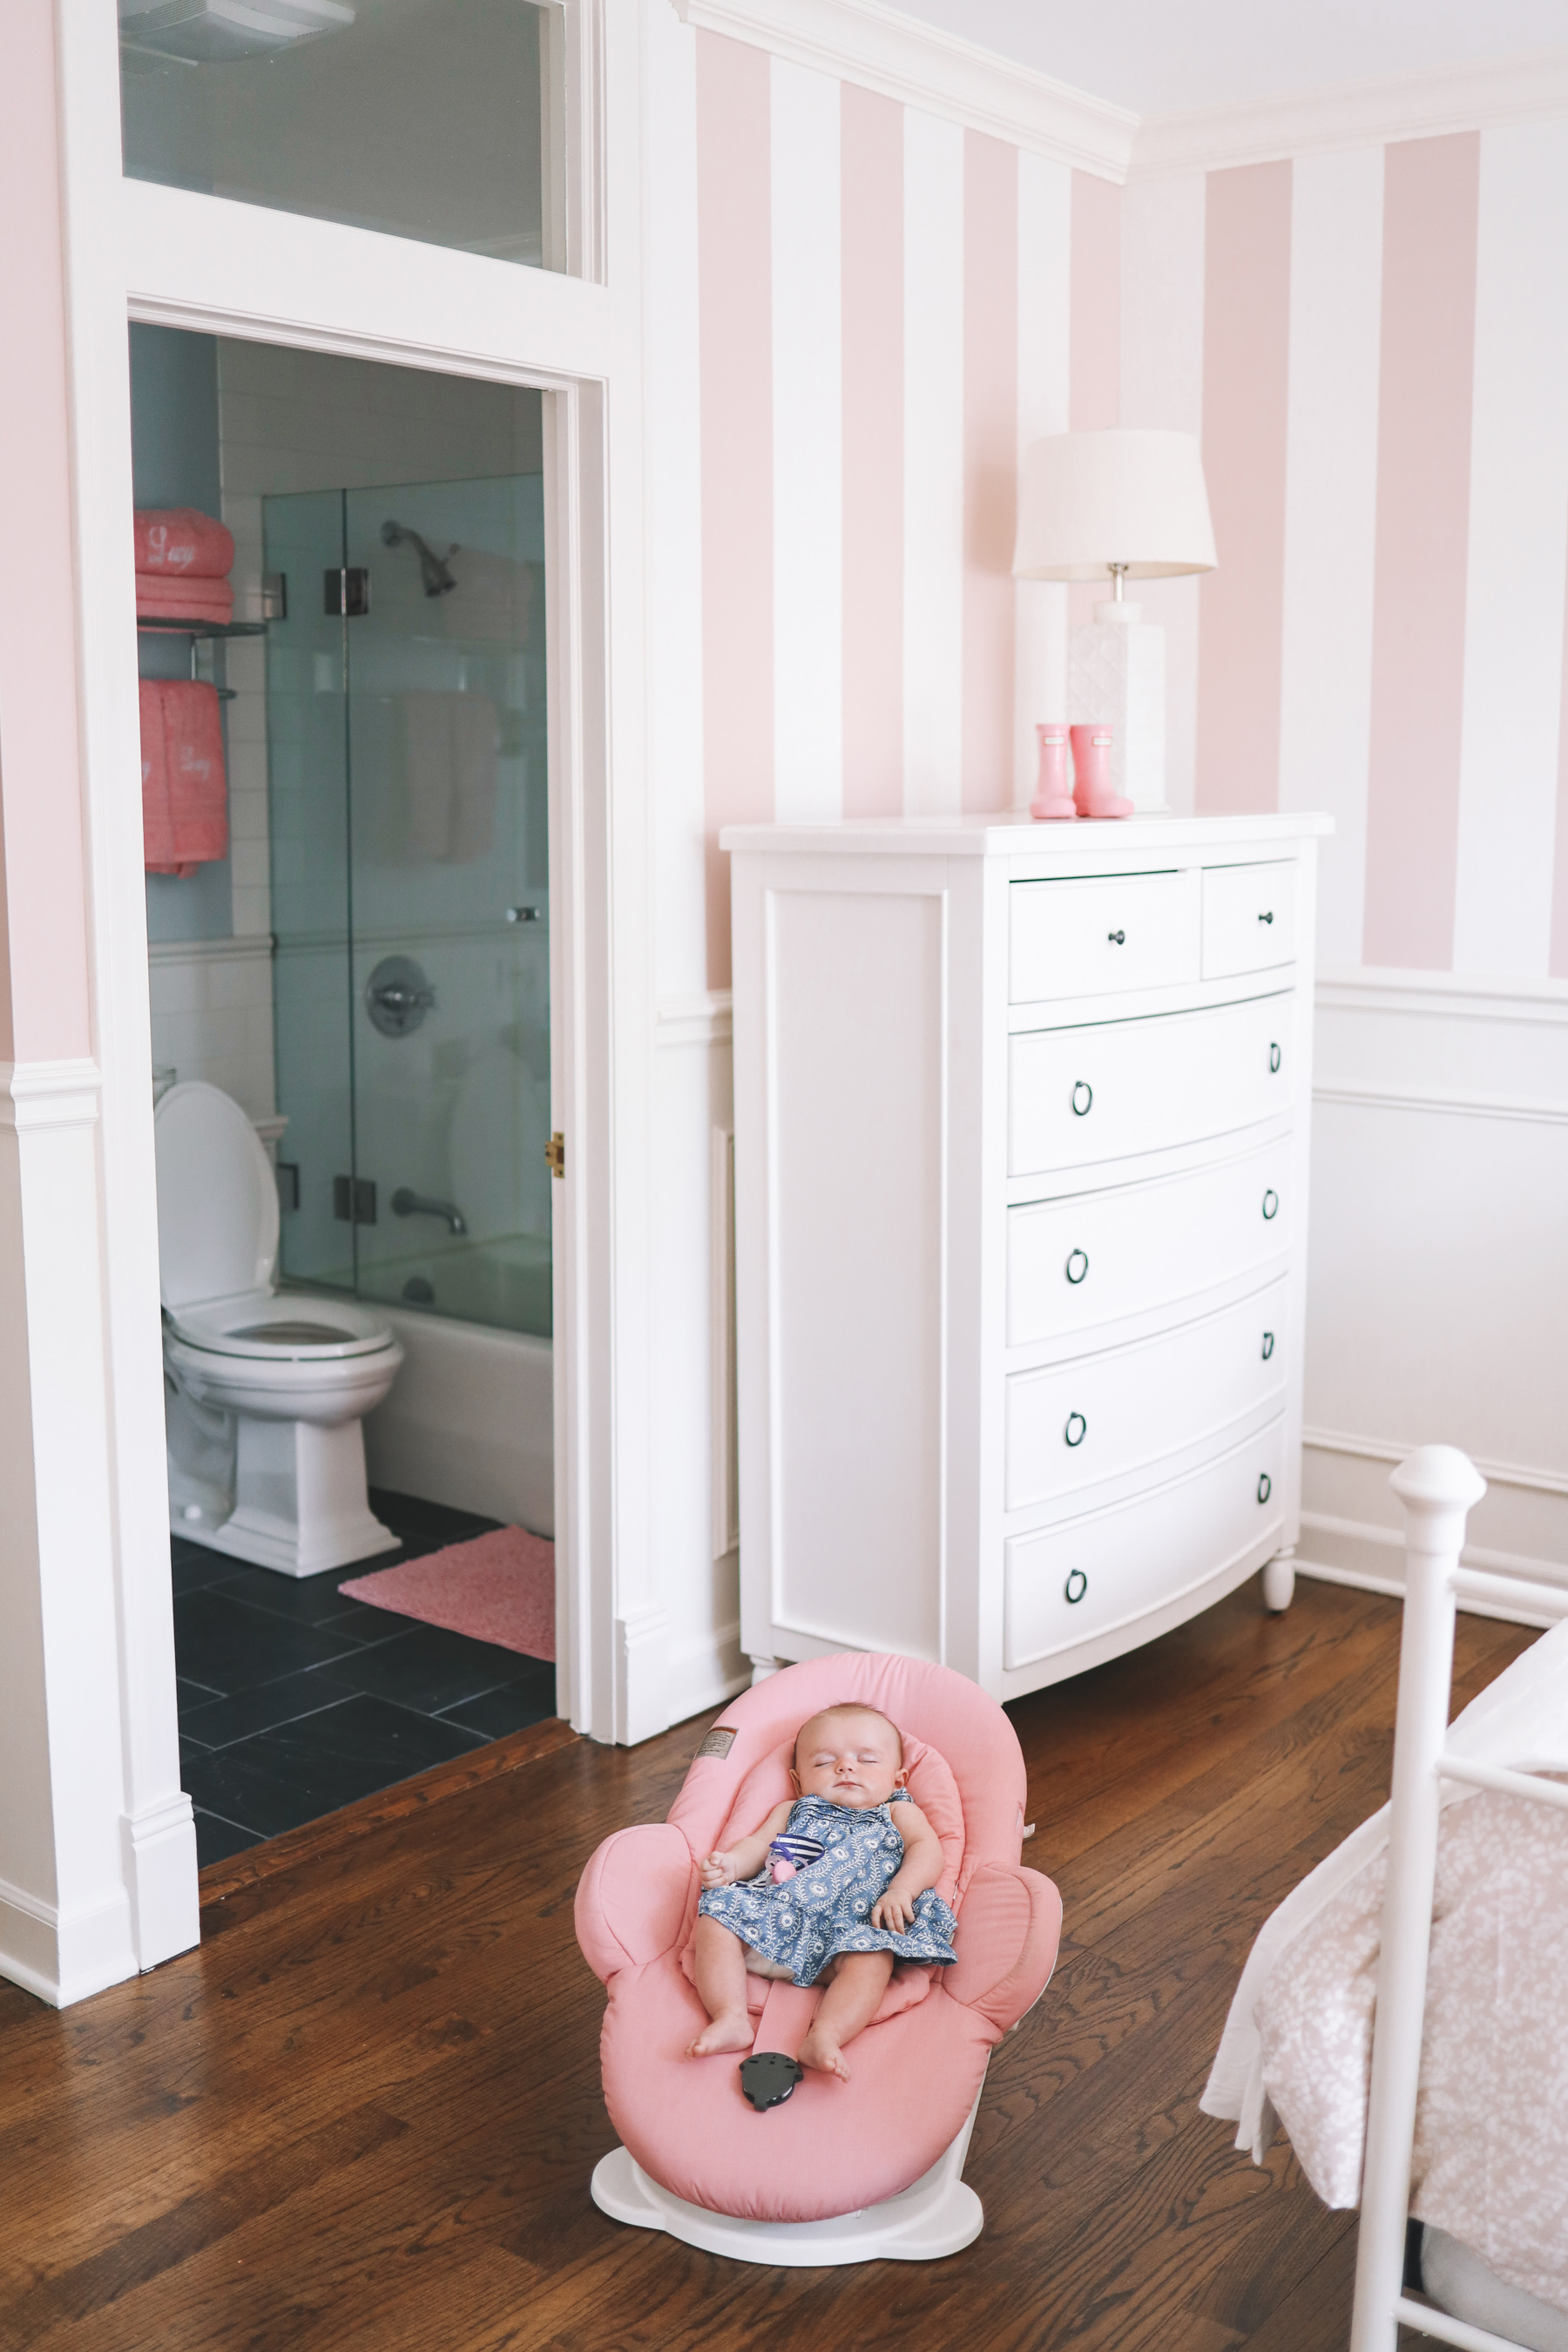 Preppy Girls Room - Lucy on the floor of her pink room, showing the decoration progress